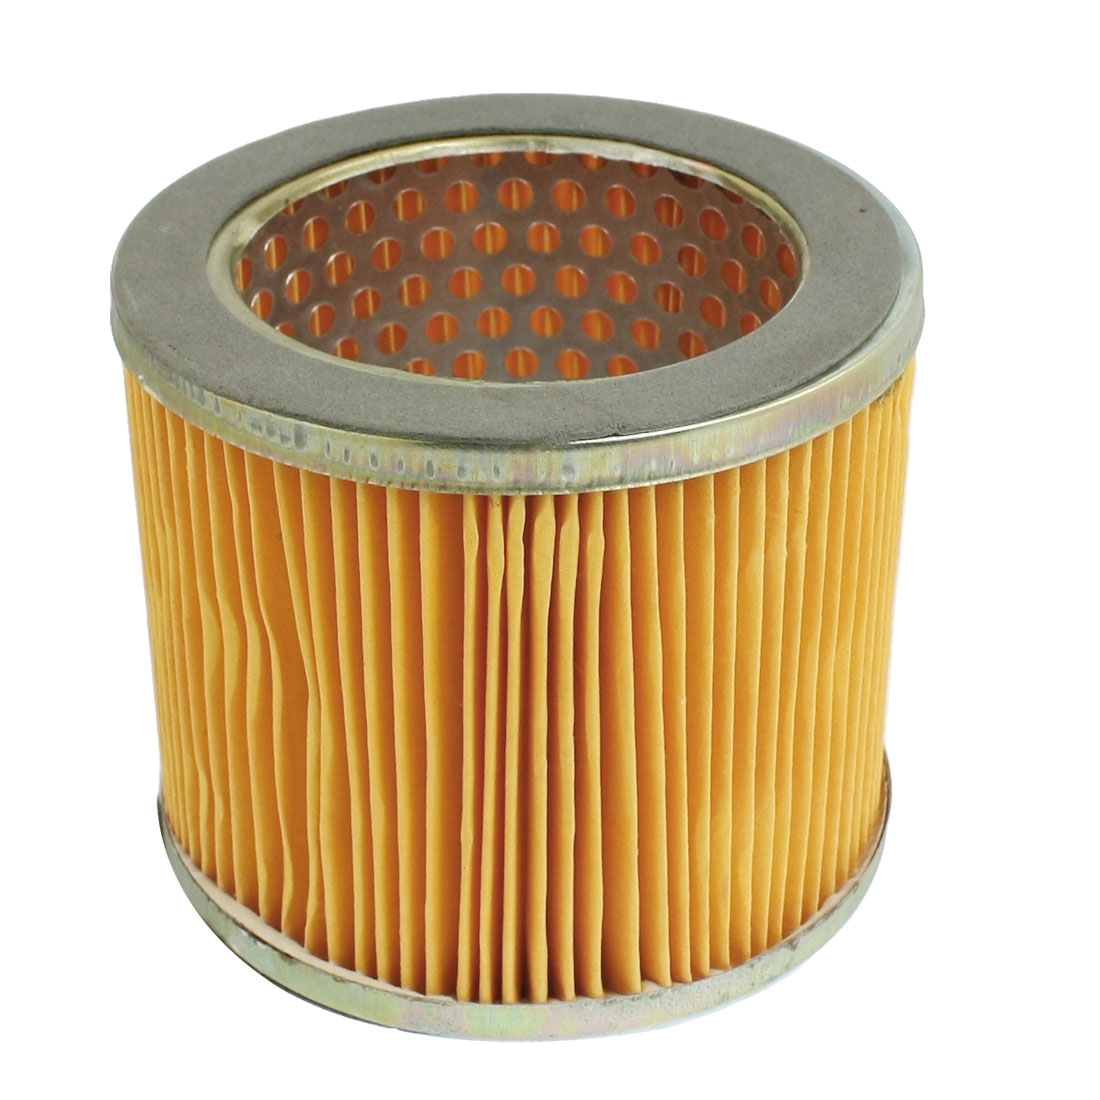 "4.1"" x 3.5"" Non-woven Cotton Air Cleaner Round Muffler Filter Element"